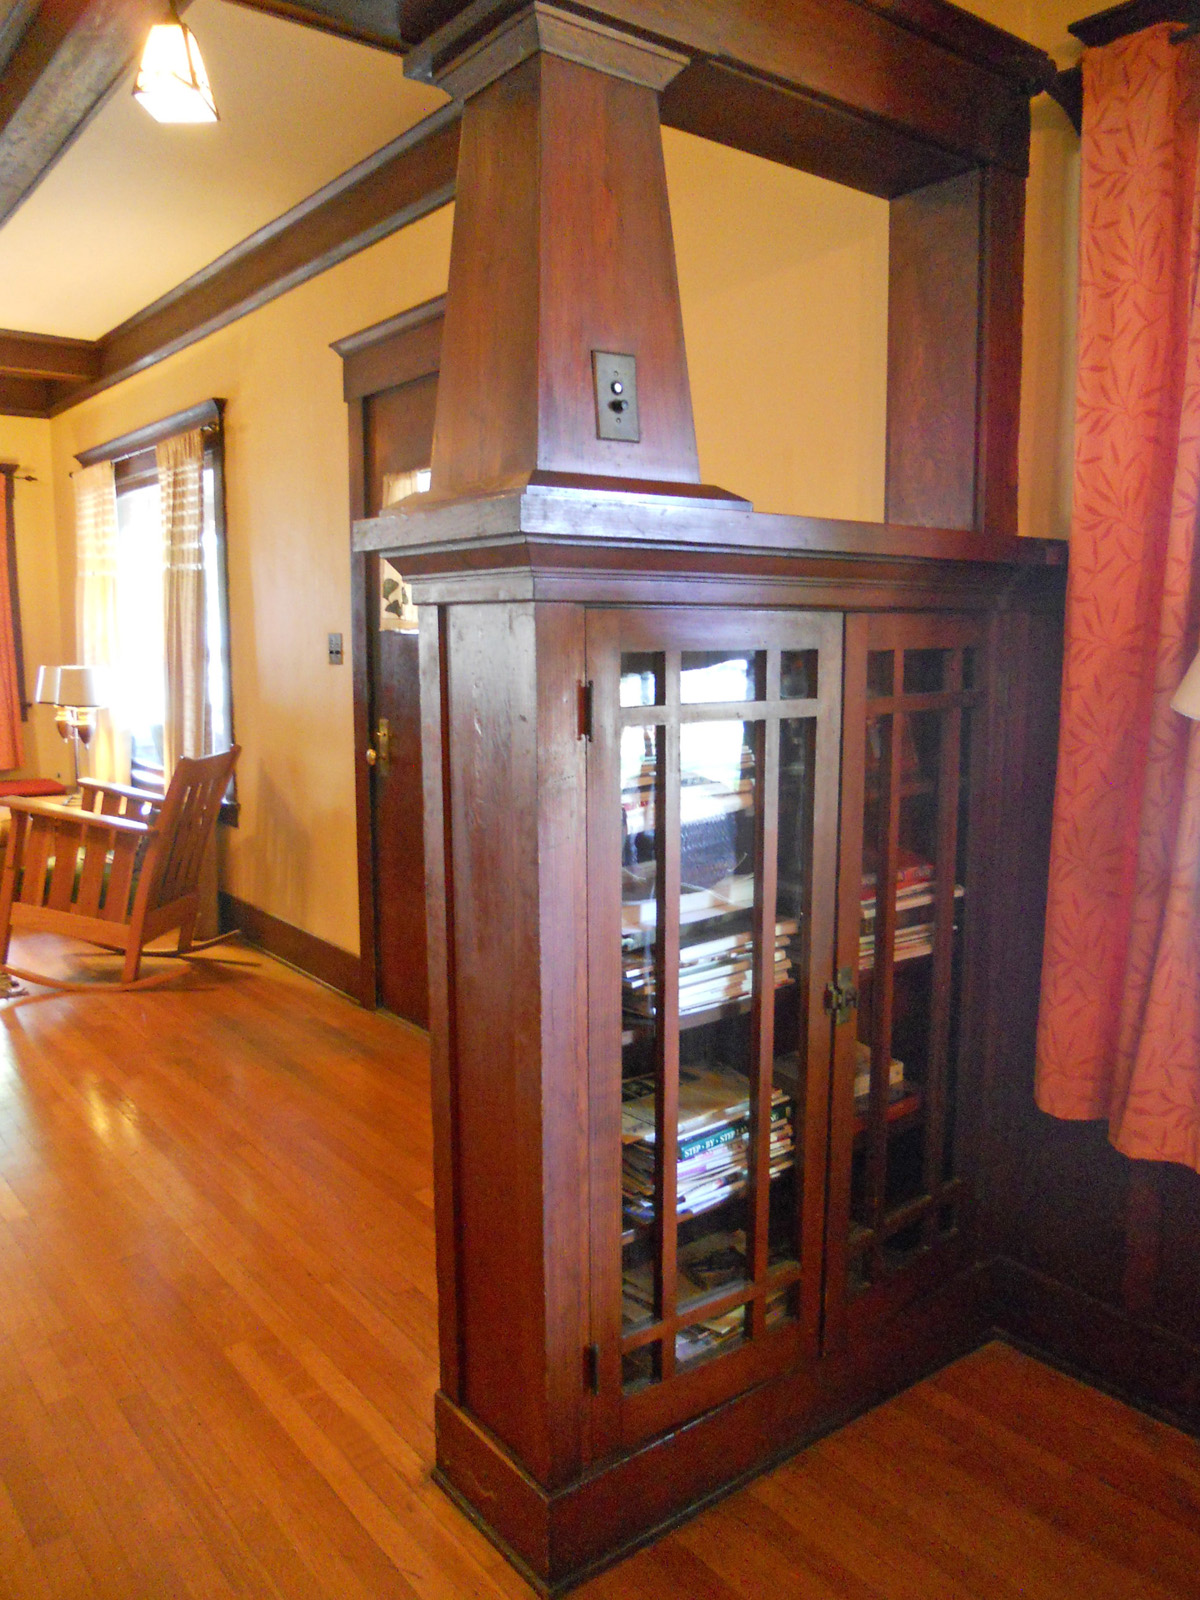 Craftsman columns with built-in bookcases separate the parlor from the living room (to the left).